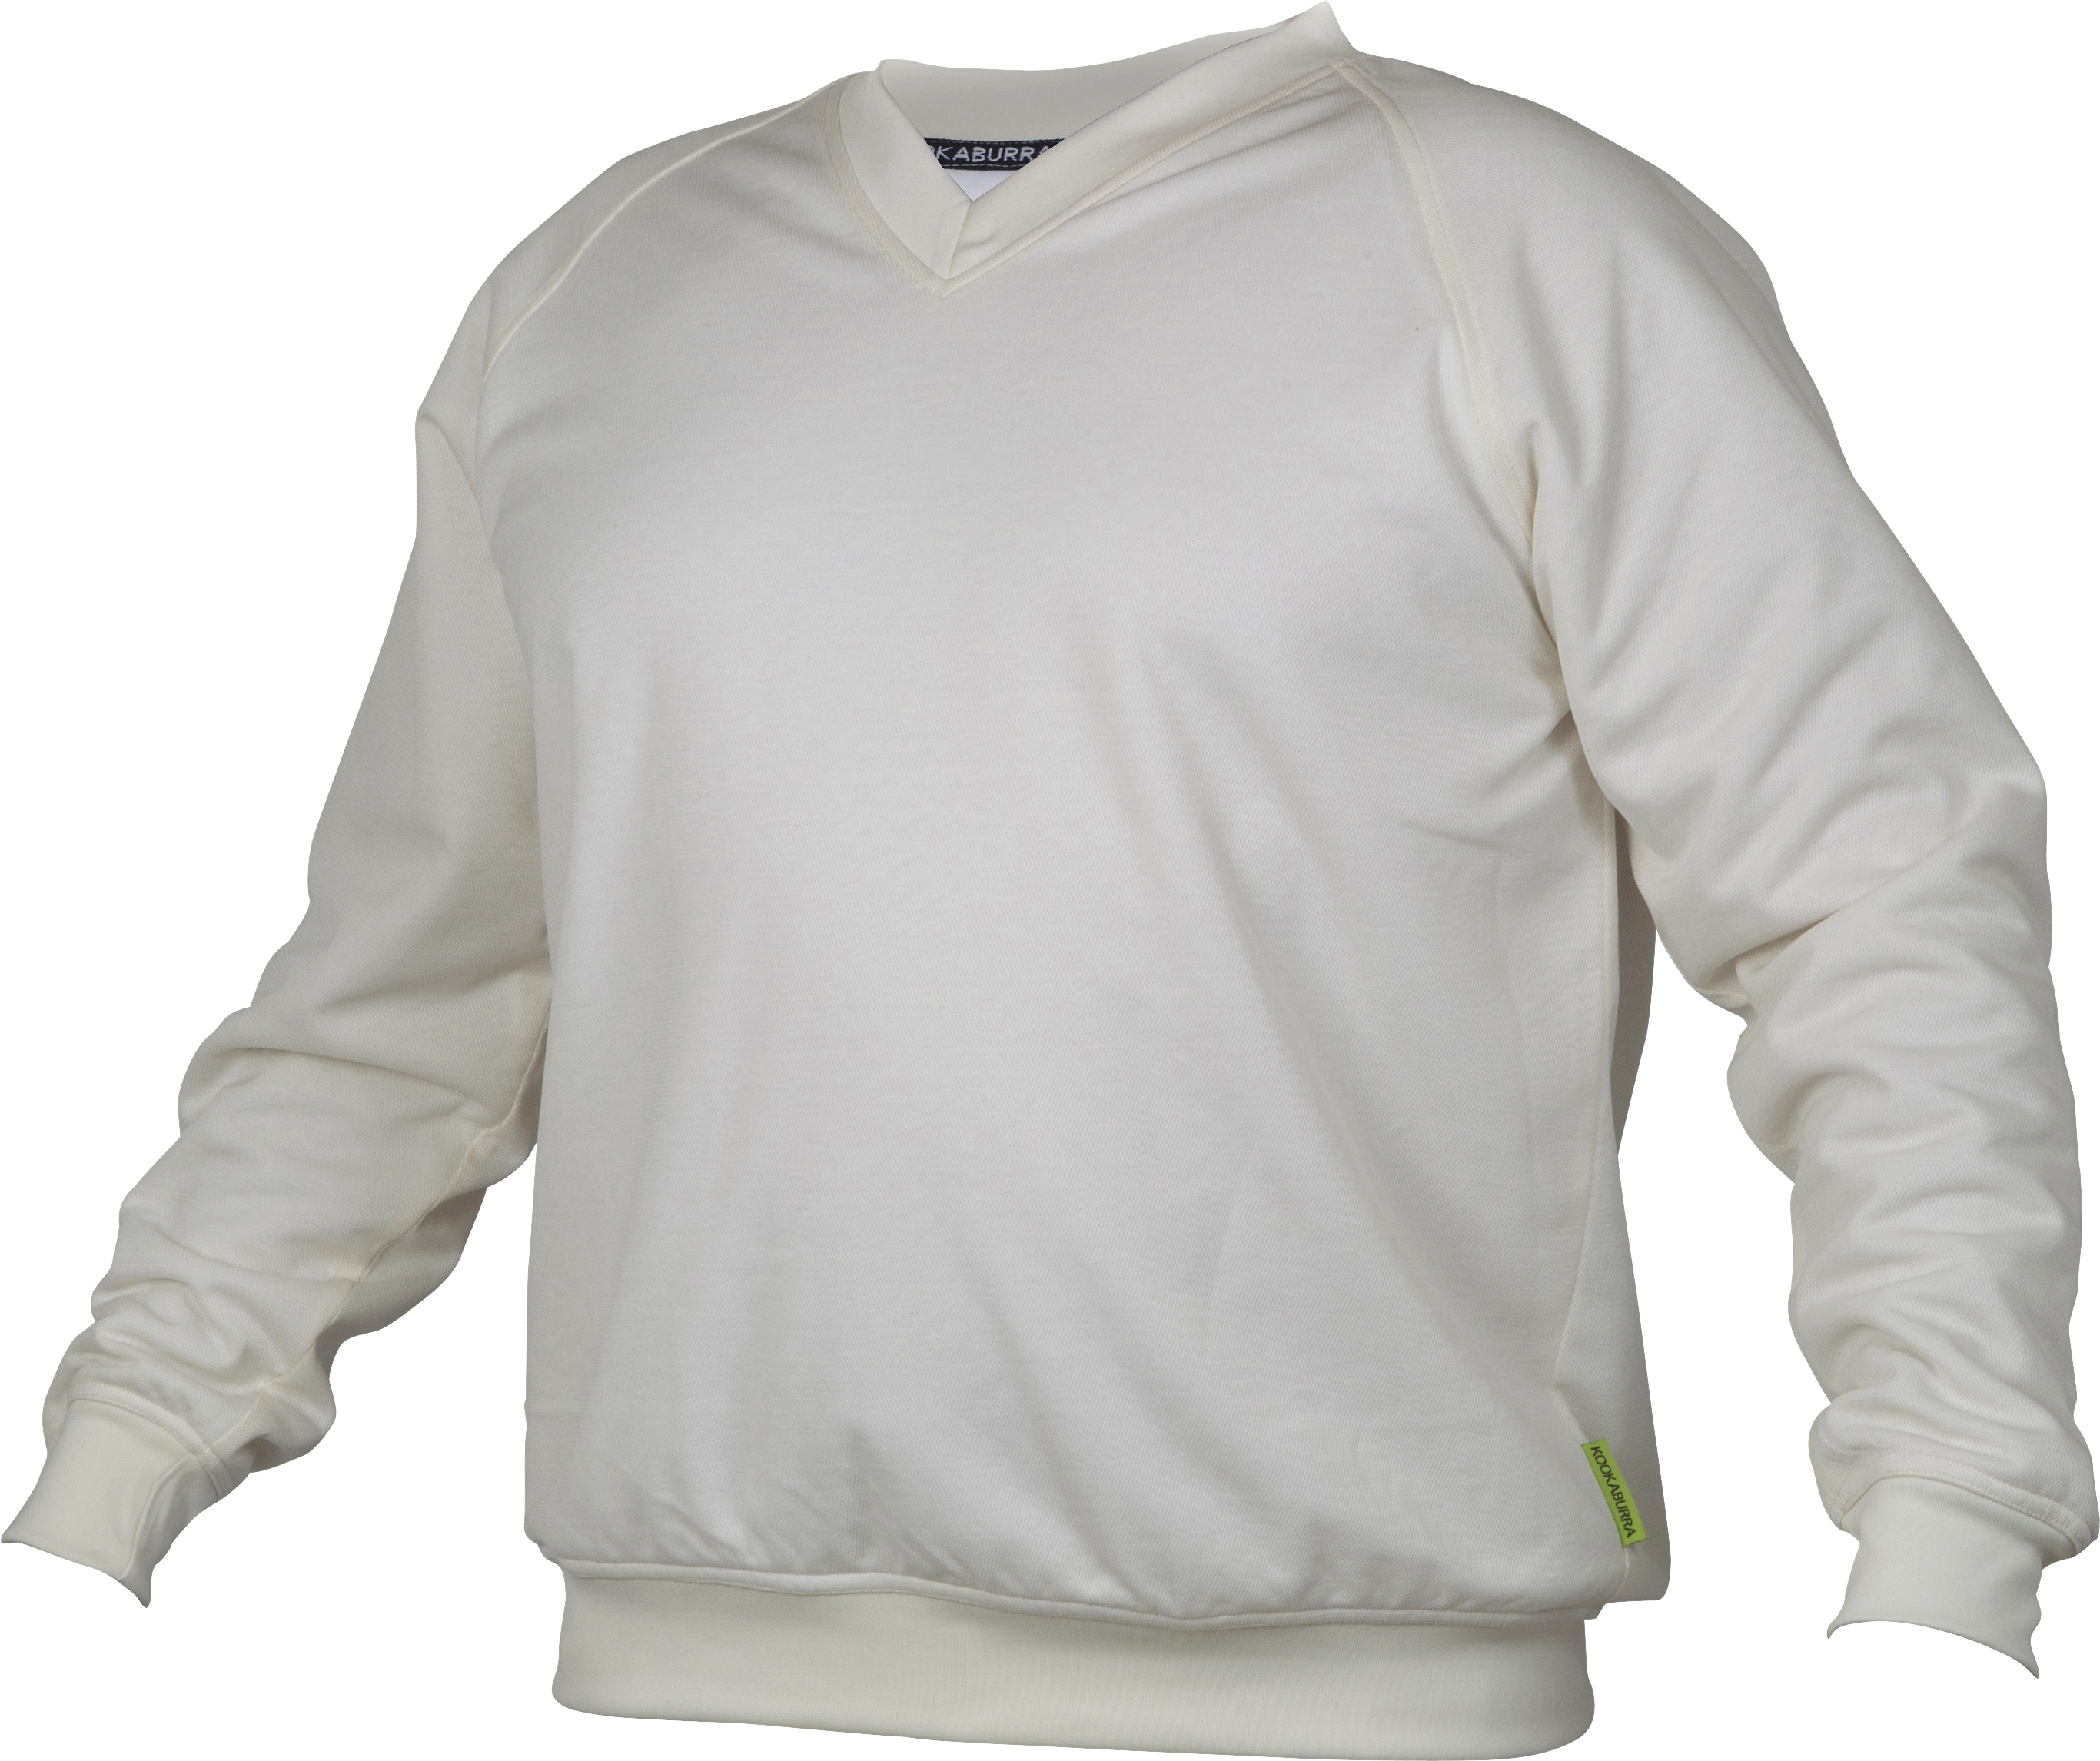 Blank sweater png. Images free download